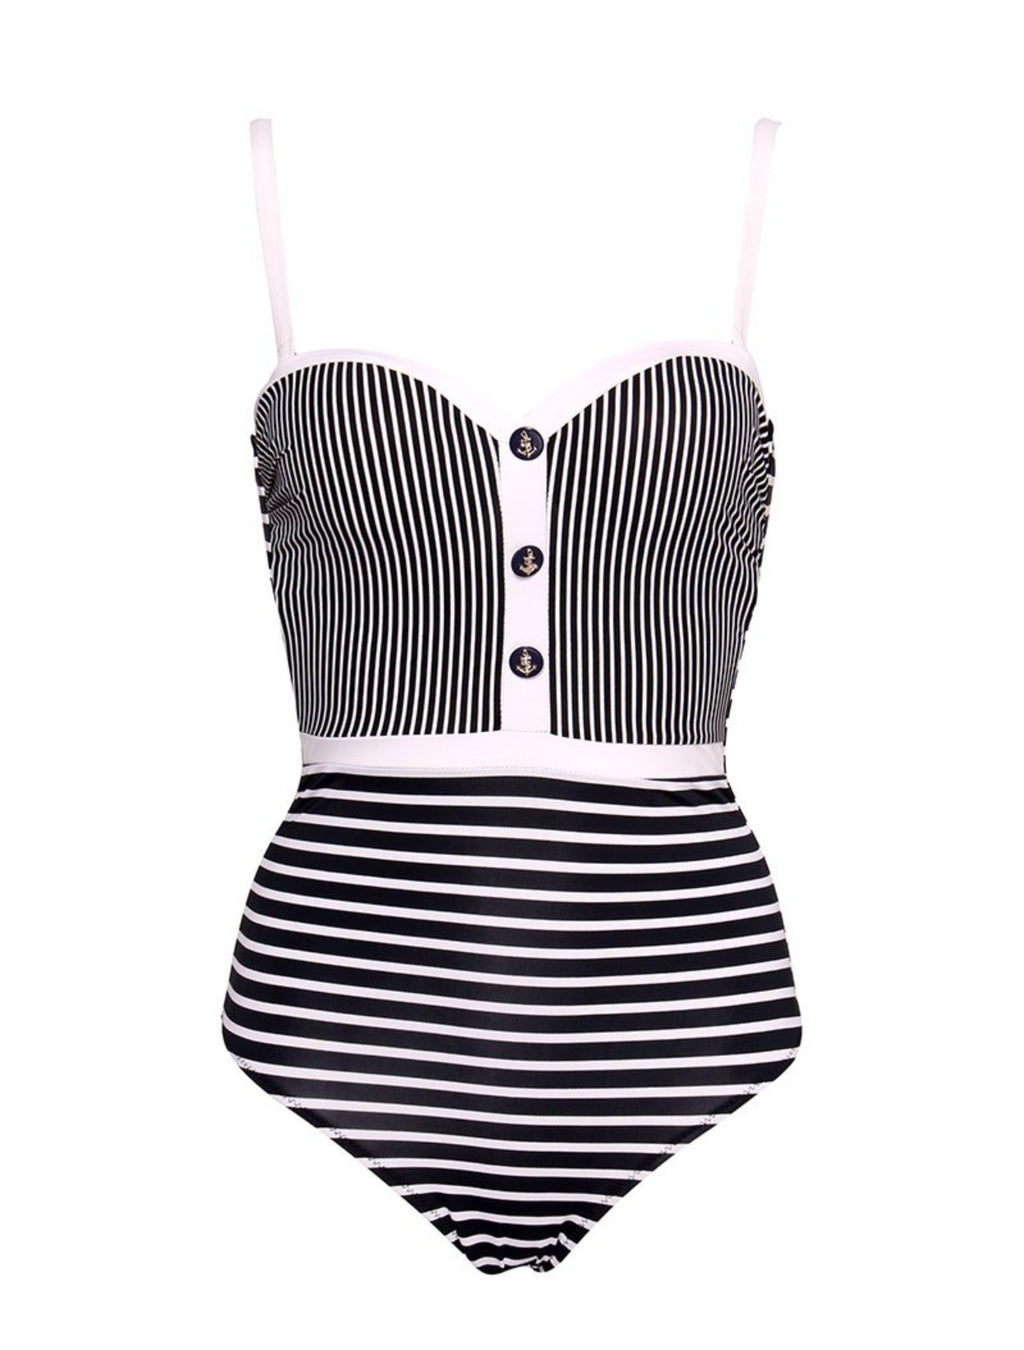 Sailor Girl Pin-Up Swimsuit - Goth Mall